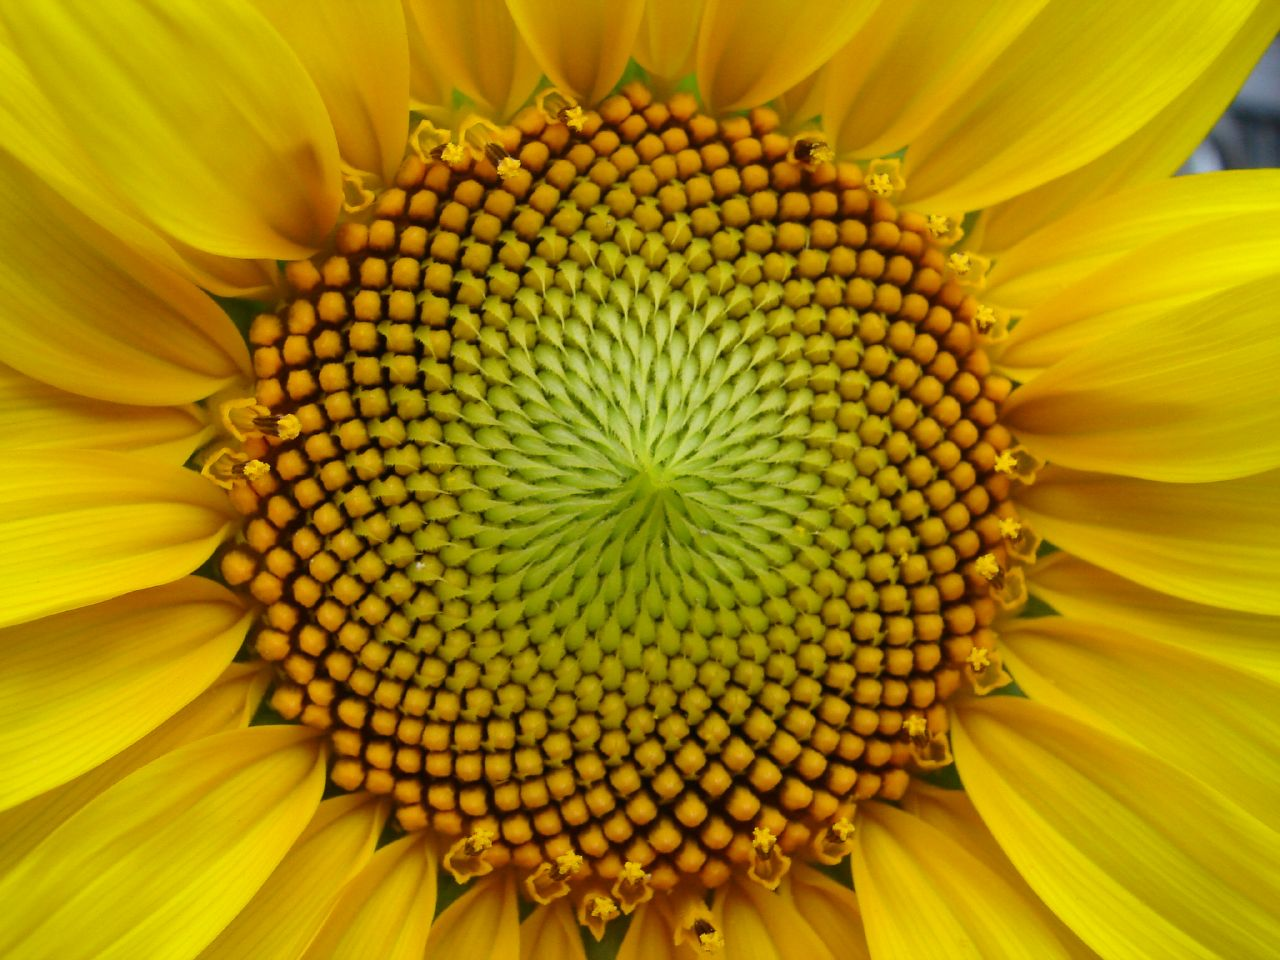 If you follow the Golden Ratio you often get Fibonacci numbers. This sunflower head has 34 disk flower spirals. Patterns such as these can found throughout nature.